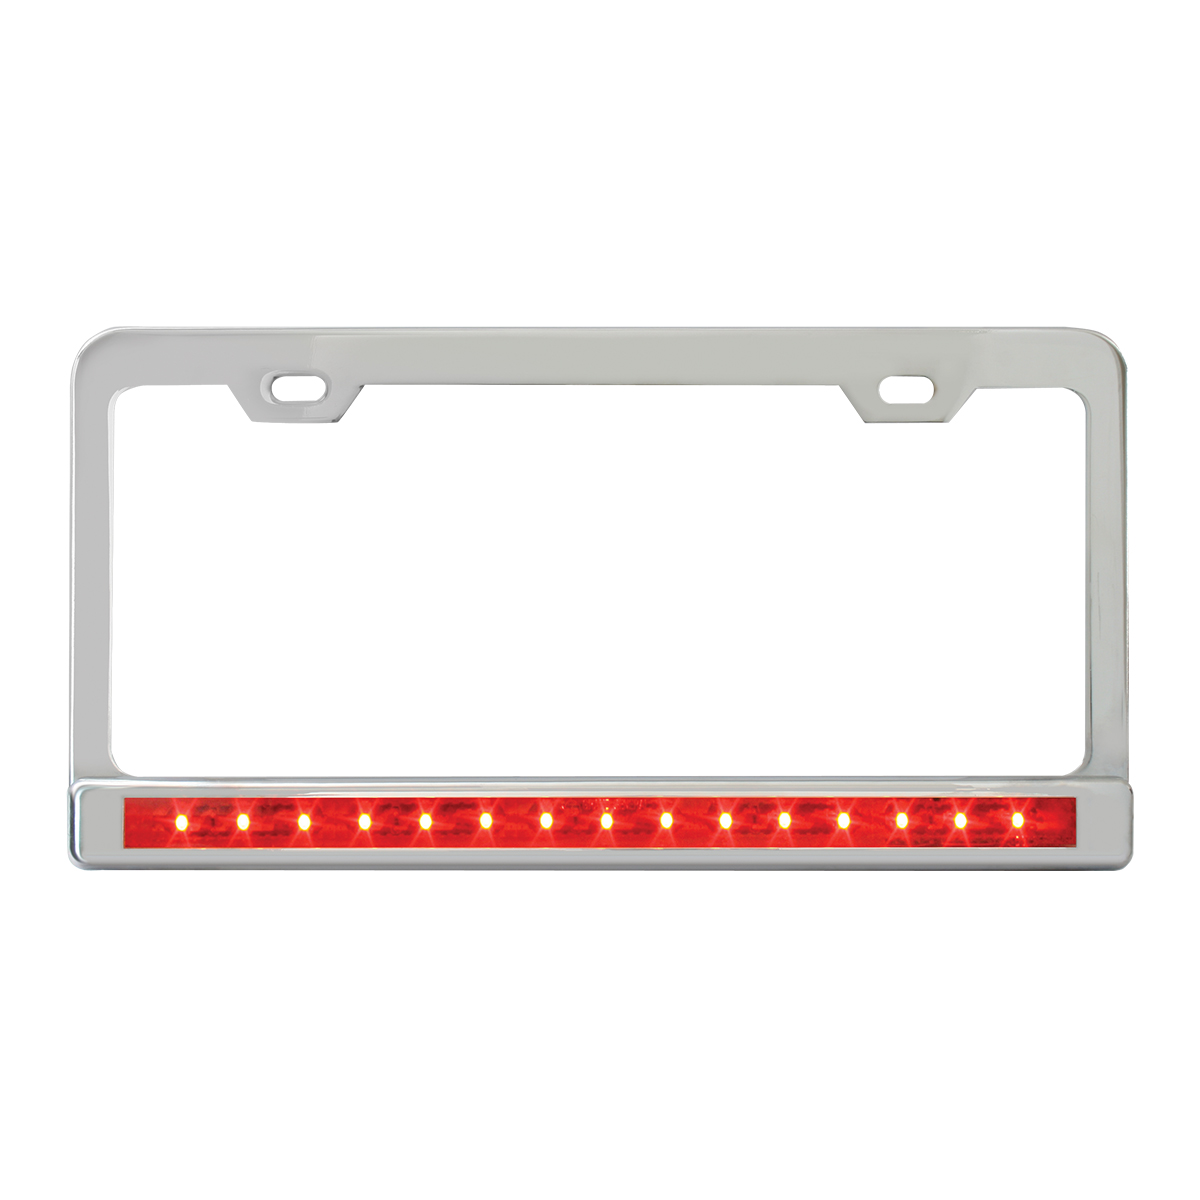 "Chrome Plated Steel 2 Holes License Plate Frame with 12"" LED Red/Red"